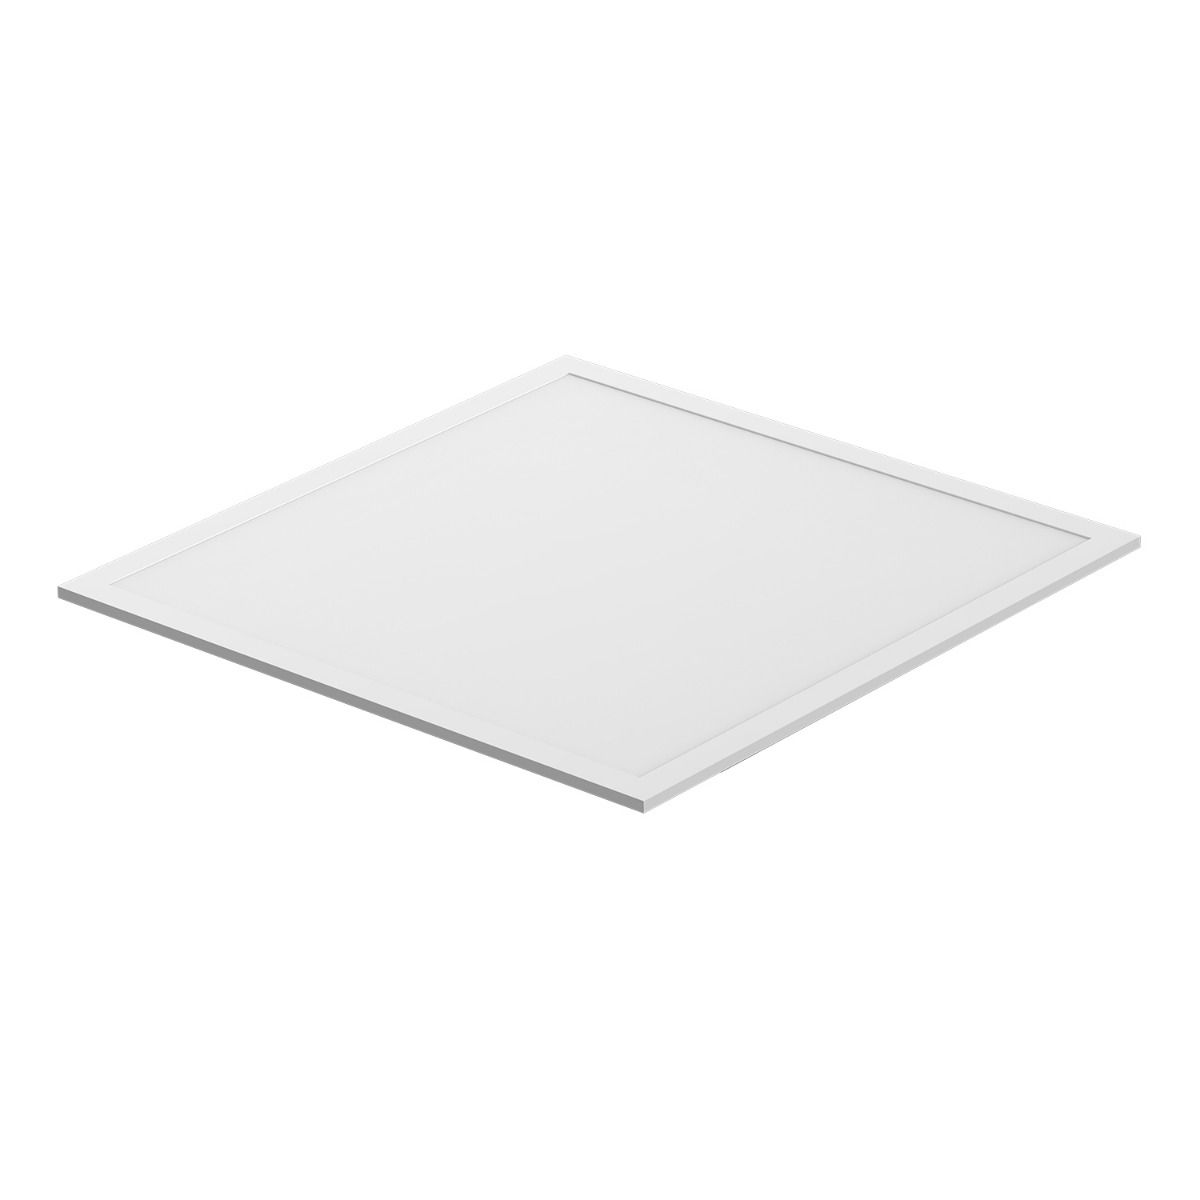 Noxion LED Panel Delta Pro V2.0 Xitanium DALI 30W 60x60cm 4000K 4110lm UGR <19 | Dali Dimmable - Replacer for 4x18W